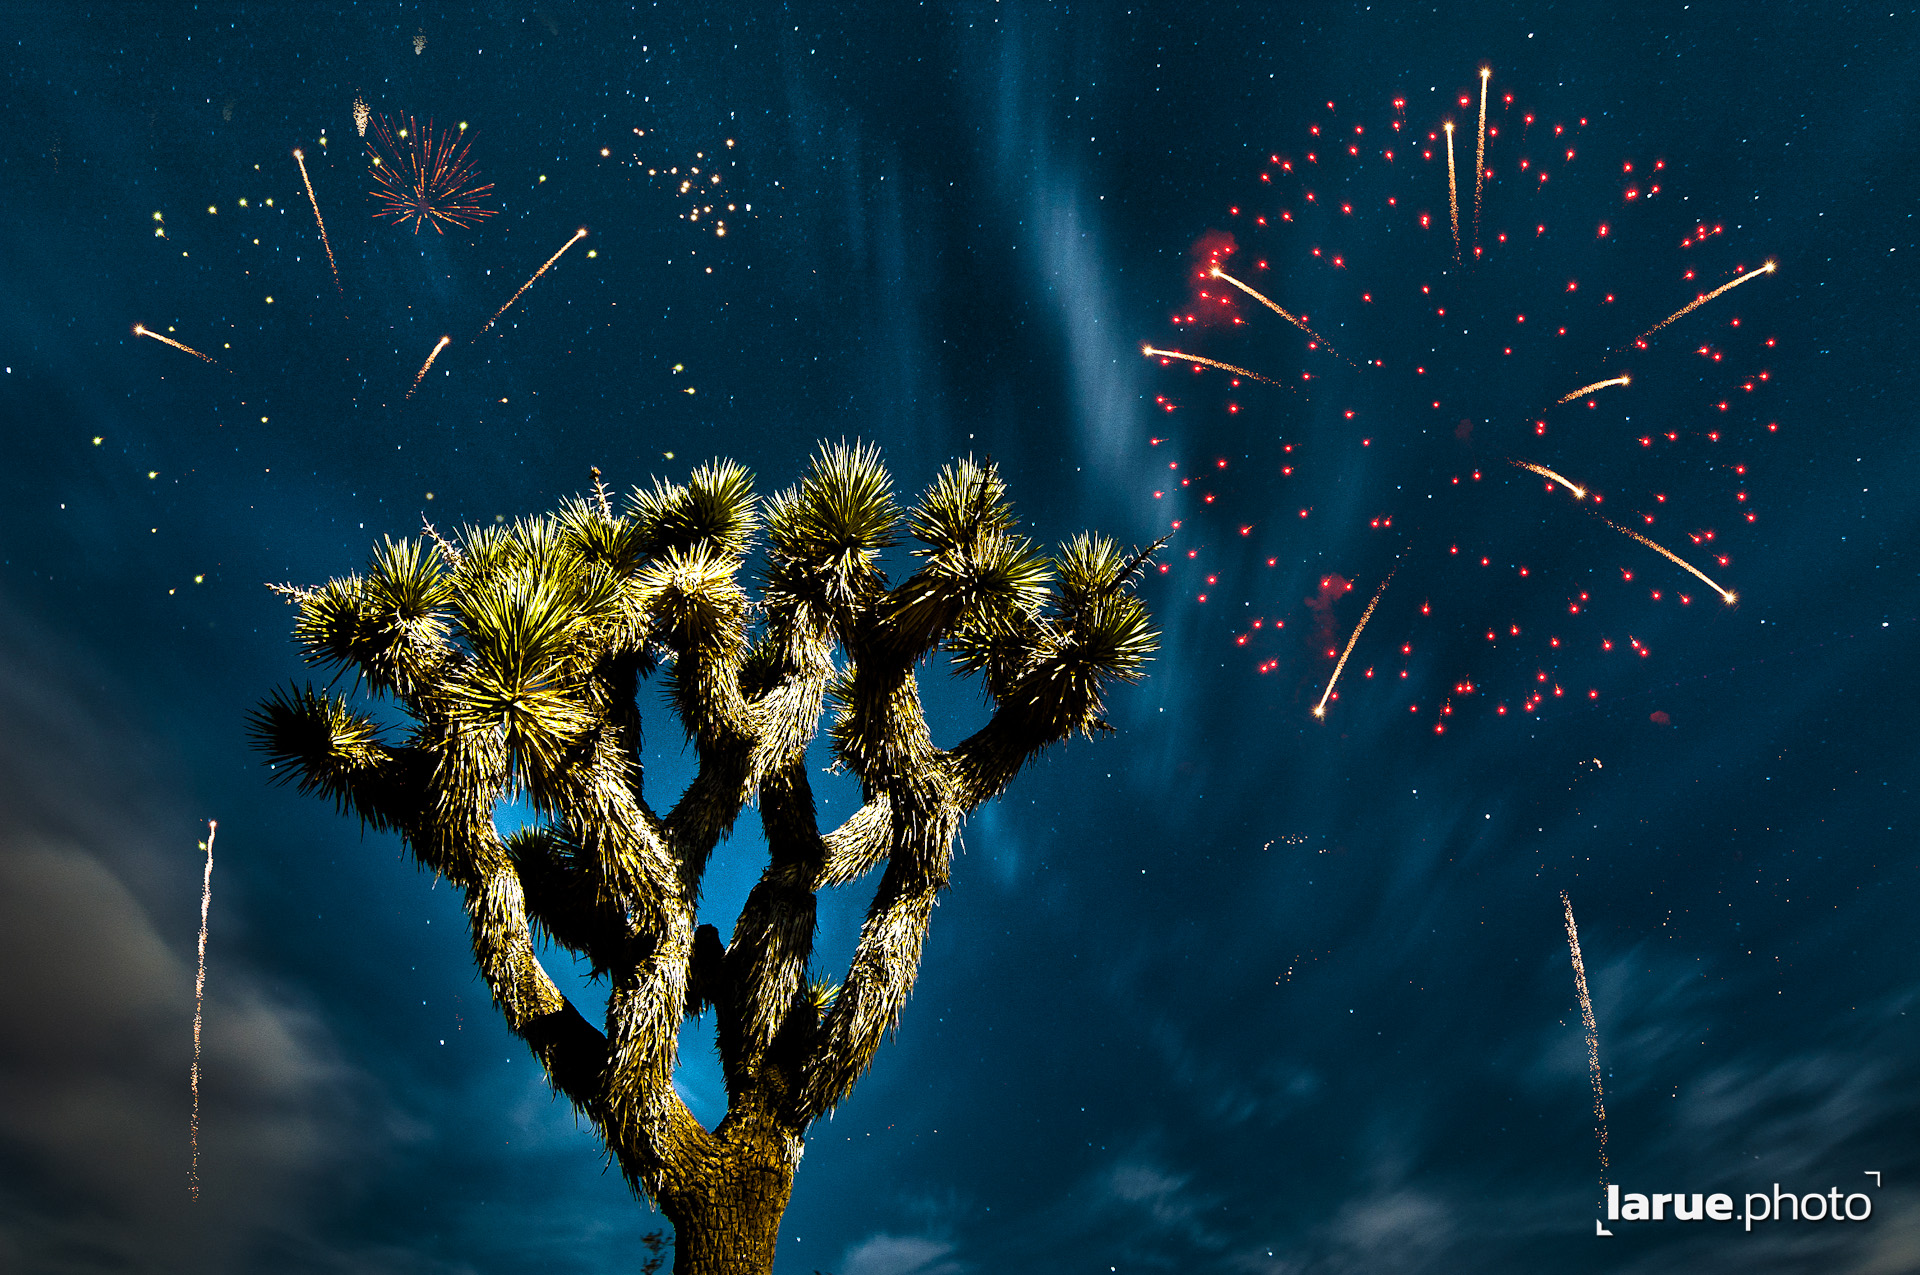 Photograph Fireworks Better Using Your Smartphone